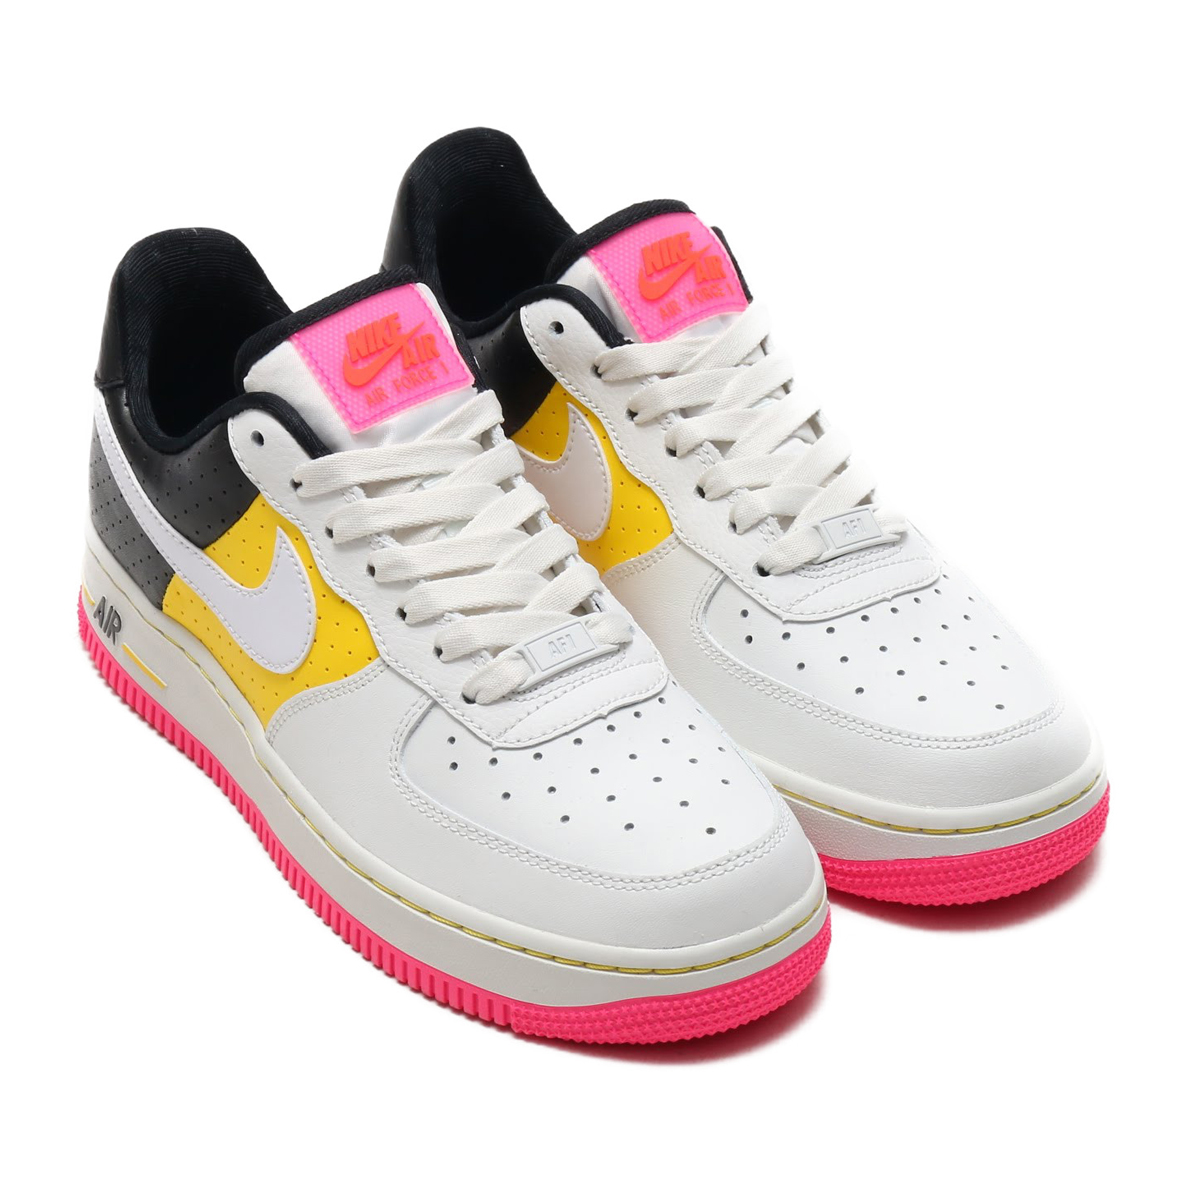 cheap for discount c4e4a 1bac7 official store womens nike air force 1 low moto white yellow black at2583  100 3da34 4a179  spain nike w air force 1 07 se moto nike women air force 1  07 se